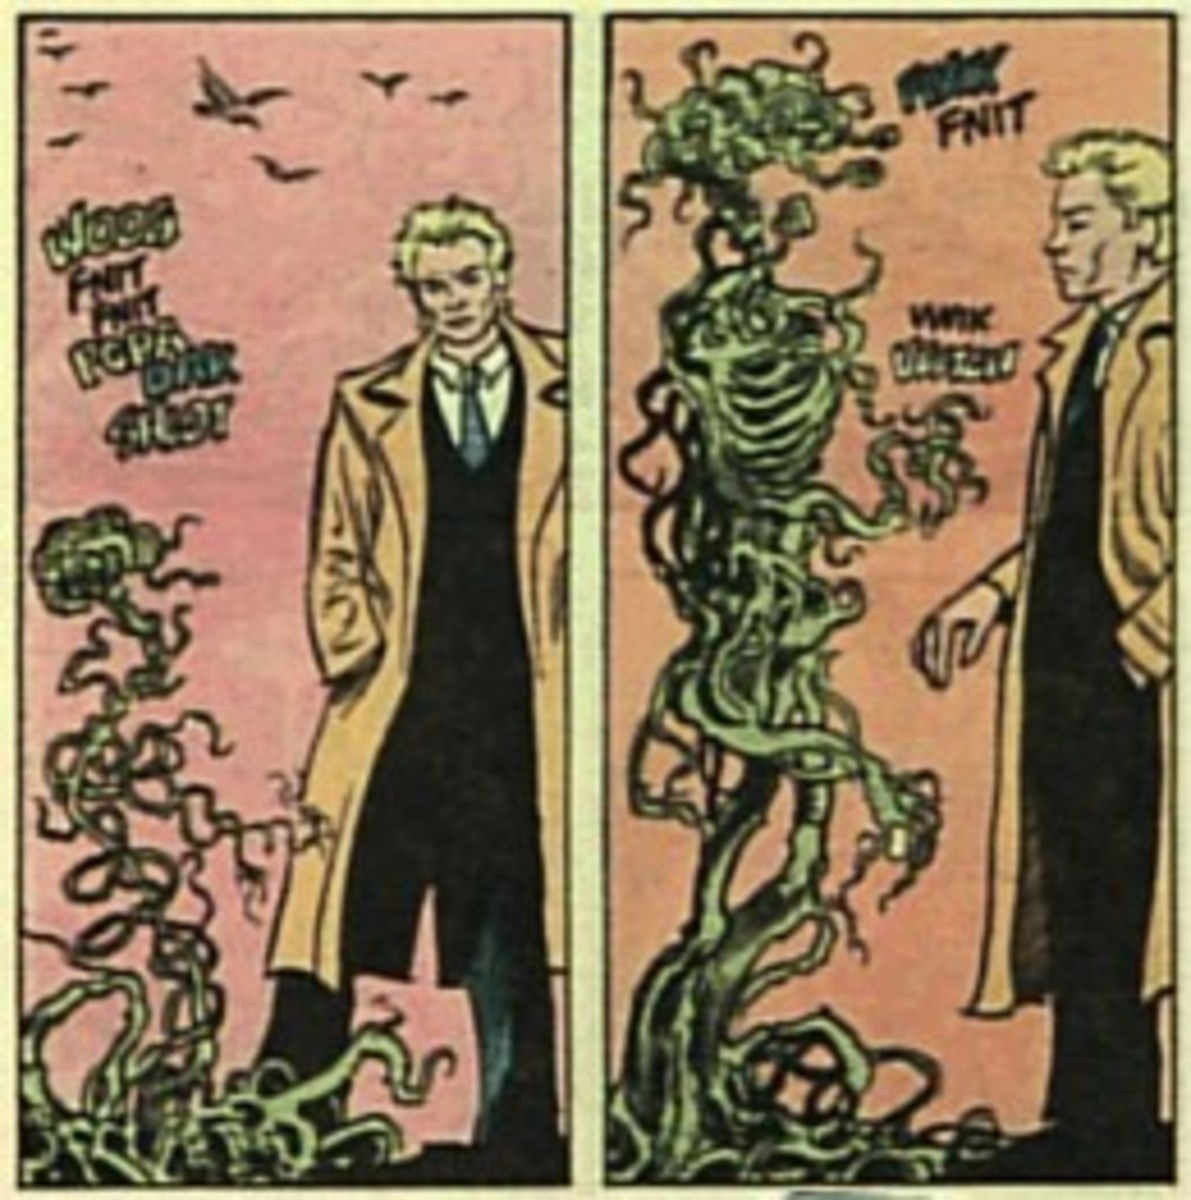 Constantine keeps himself composed as Swamp Thing...composes himself.